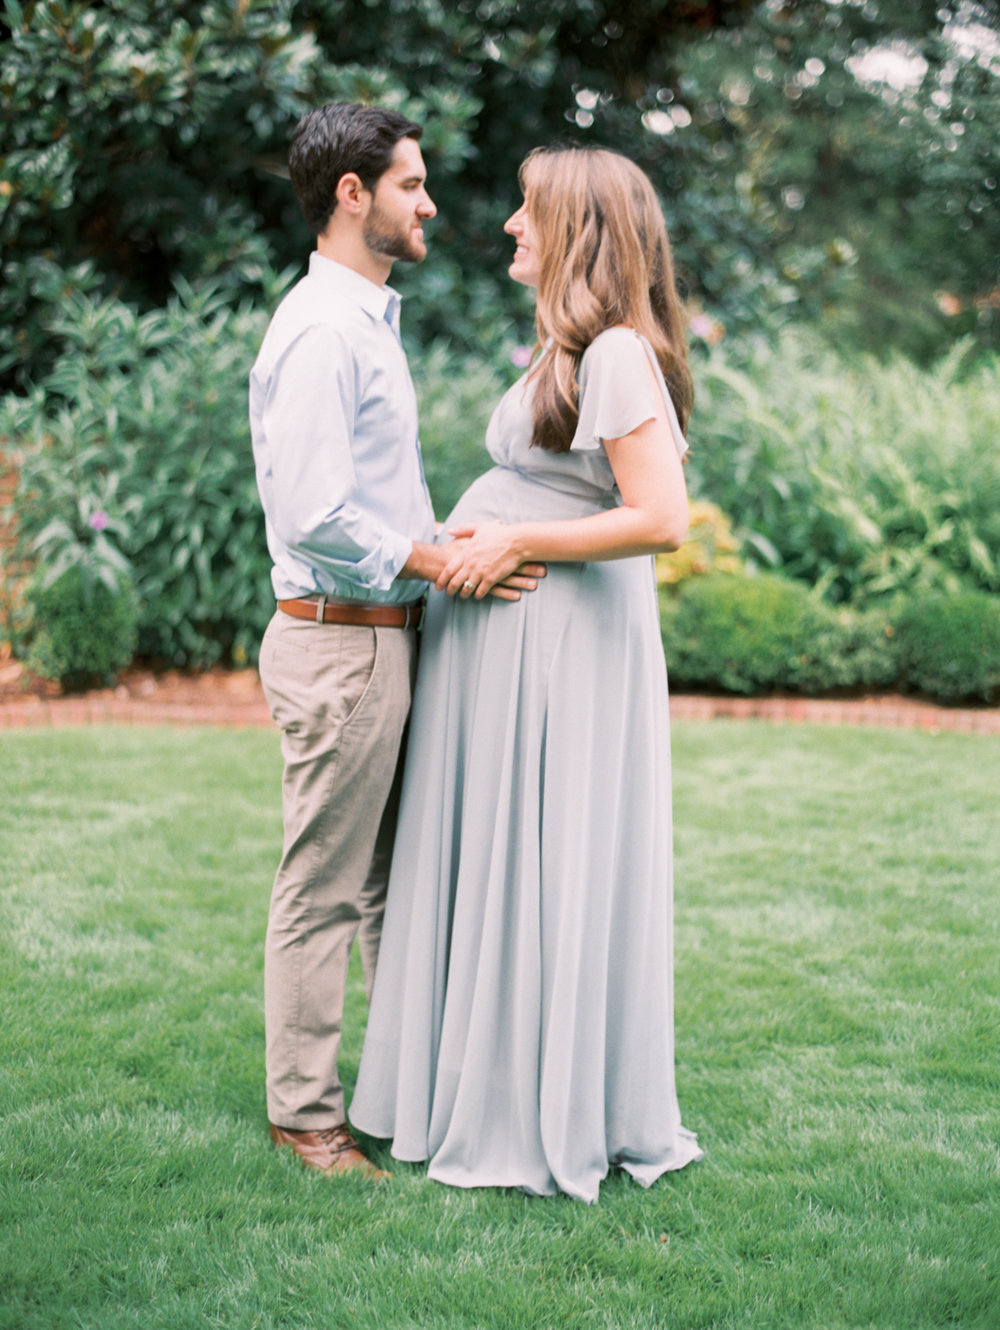 shackleford maternity four corners photography athens maternity photographer anna shackleford photography atlanta film photographer maternity photography-9.jpg